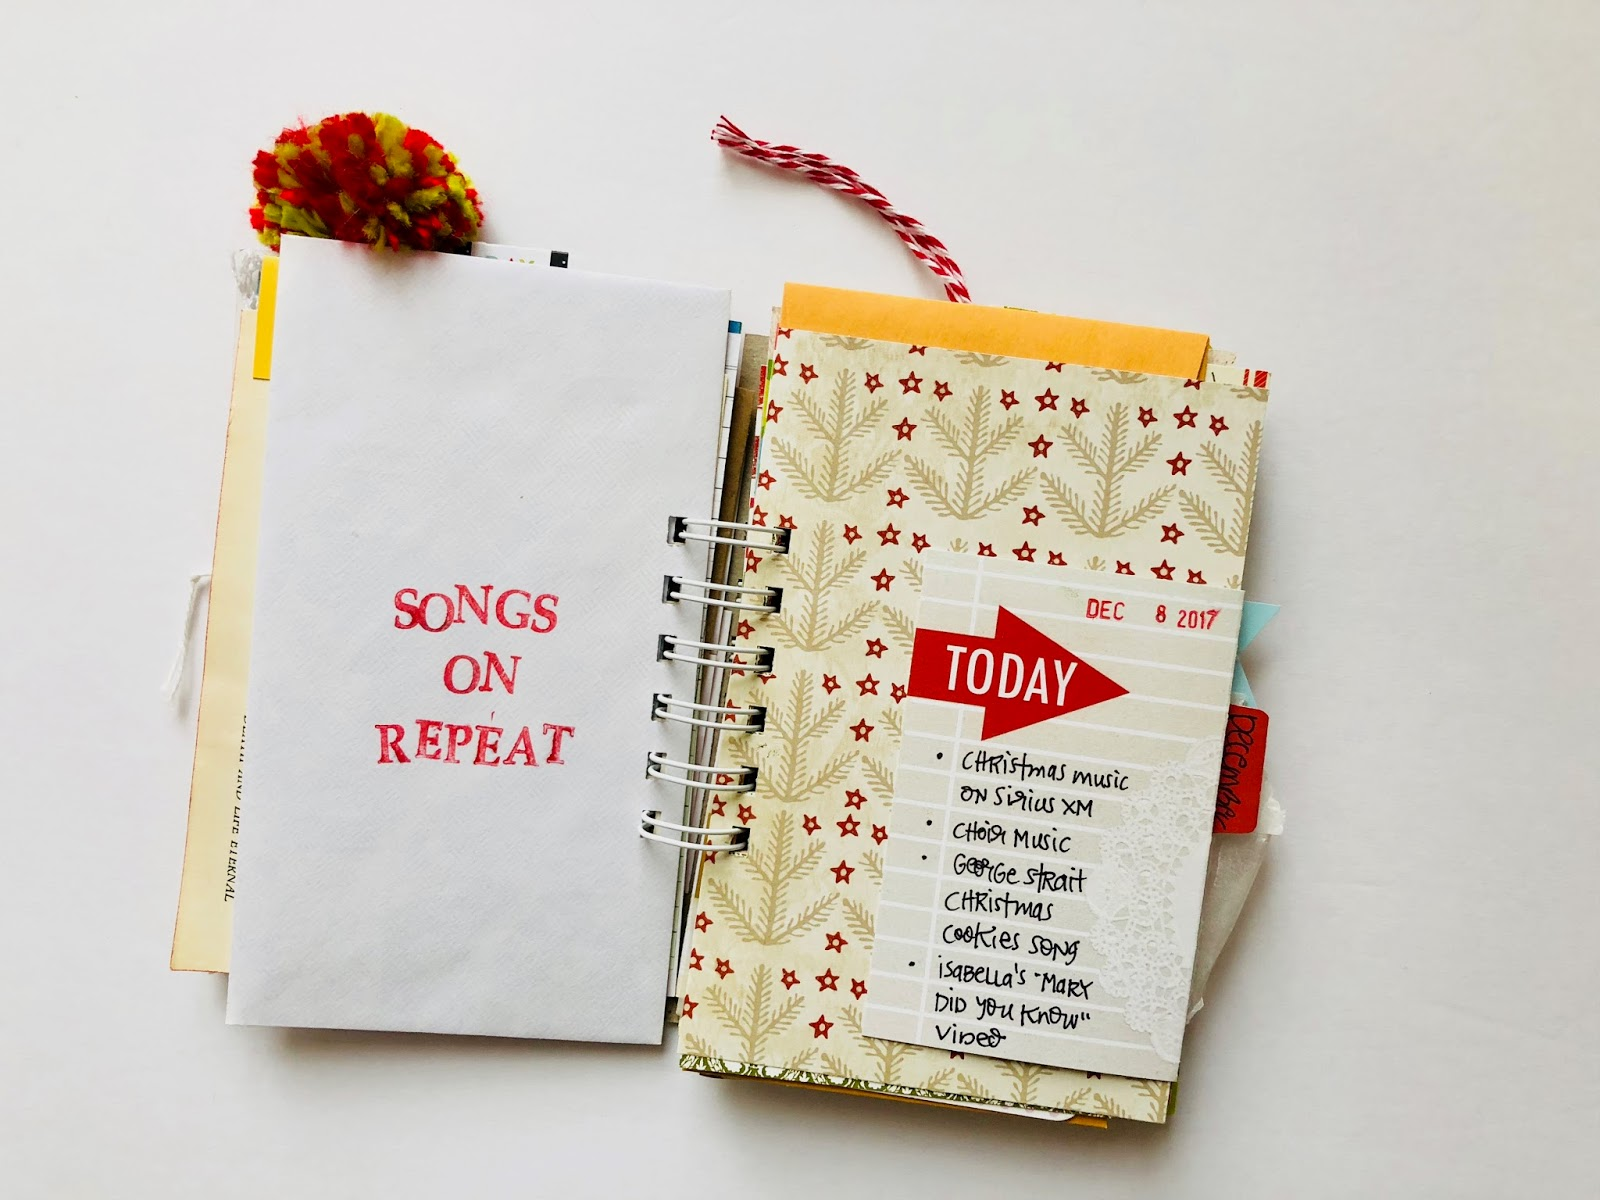 #songs #repeat #mixed #media #journal #lists #30lists